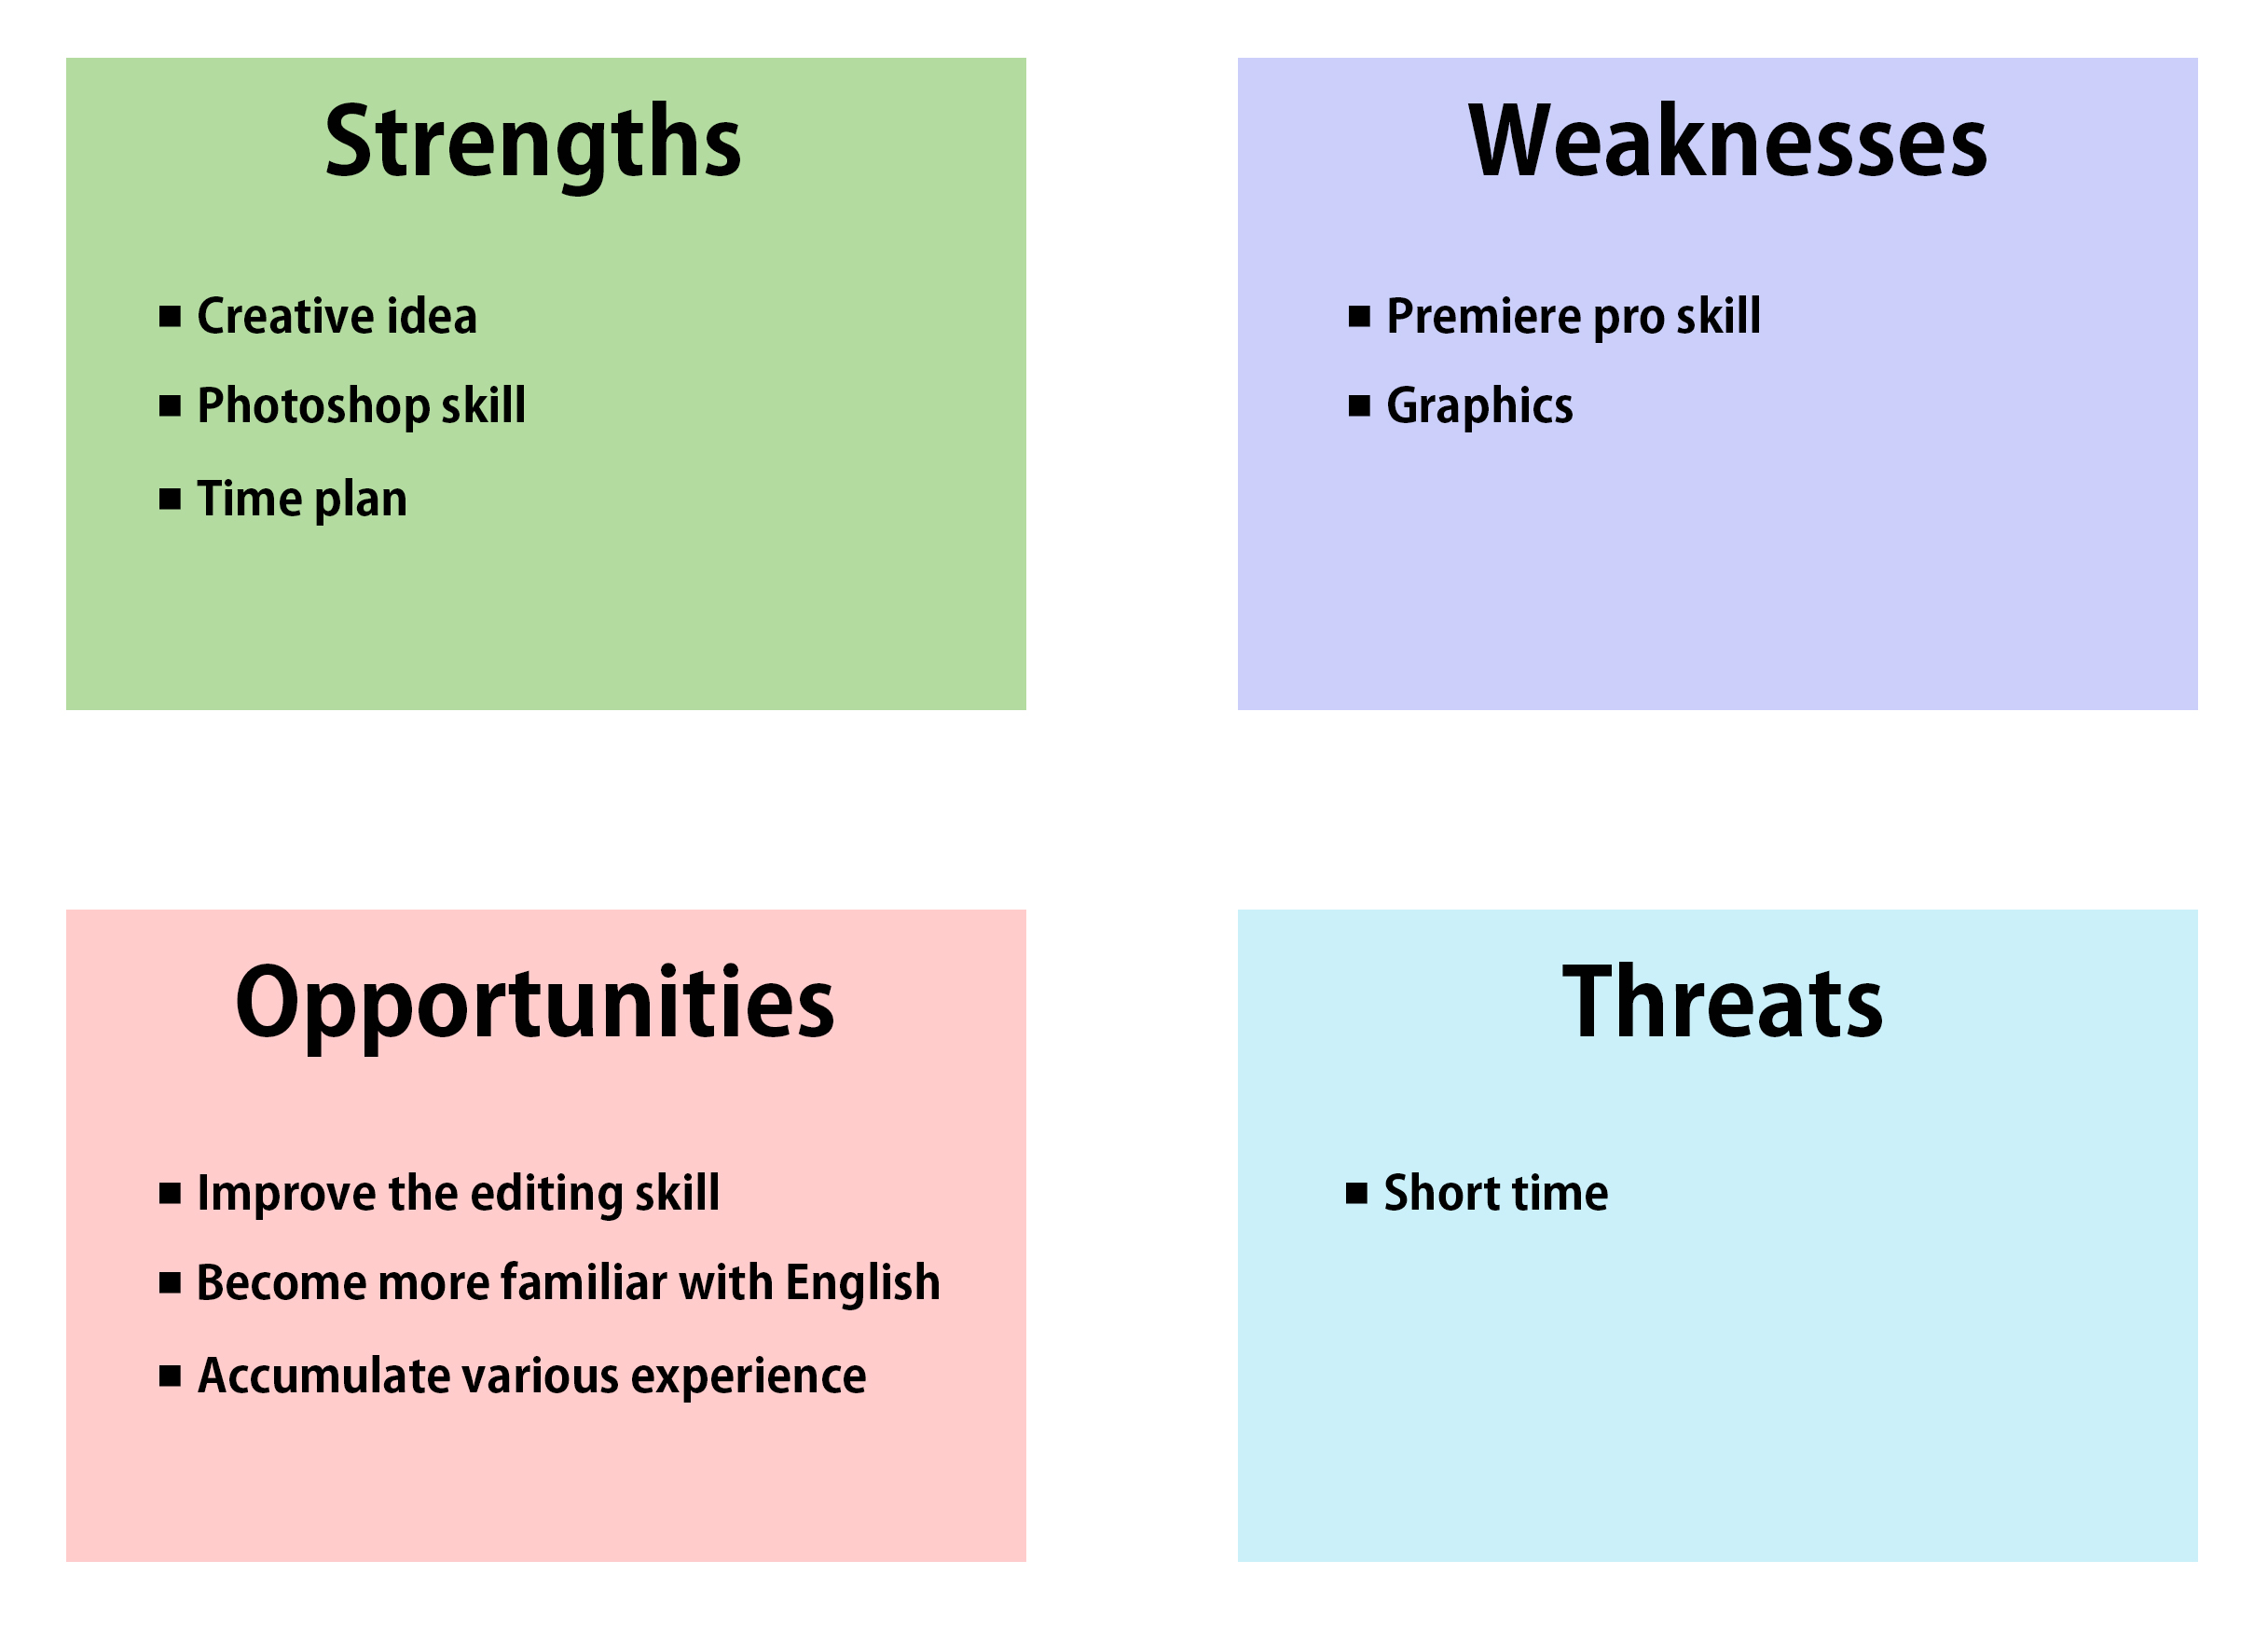 Strengths and Weaknesses of Online Learning